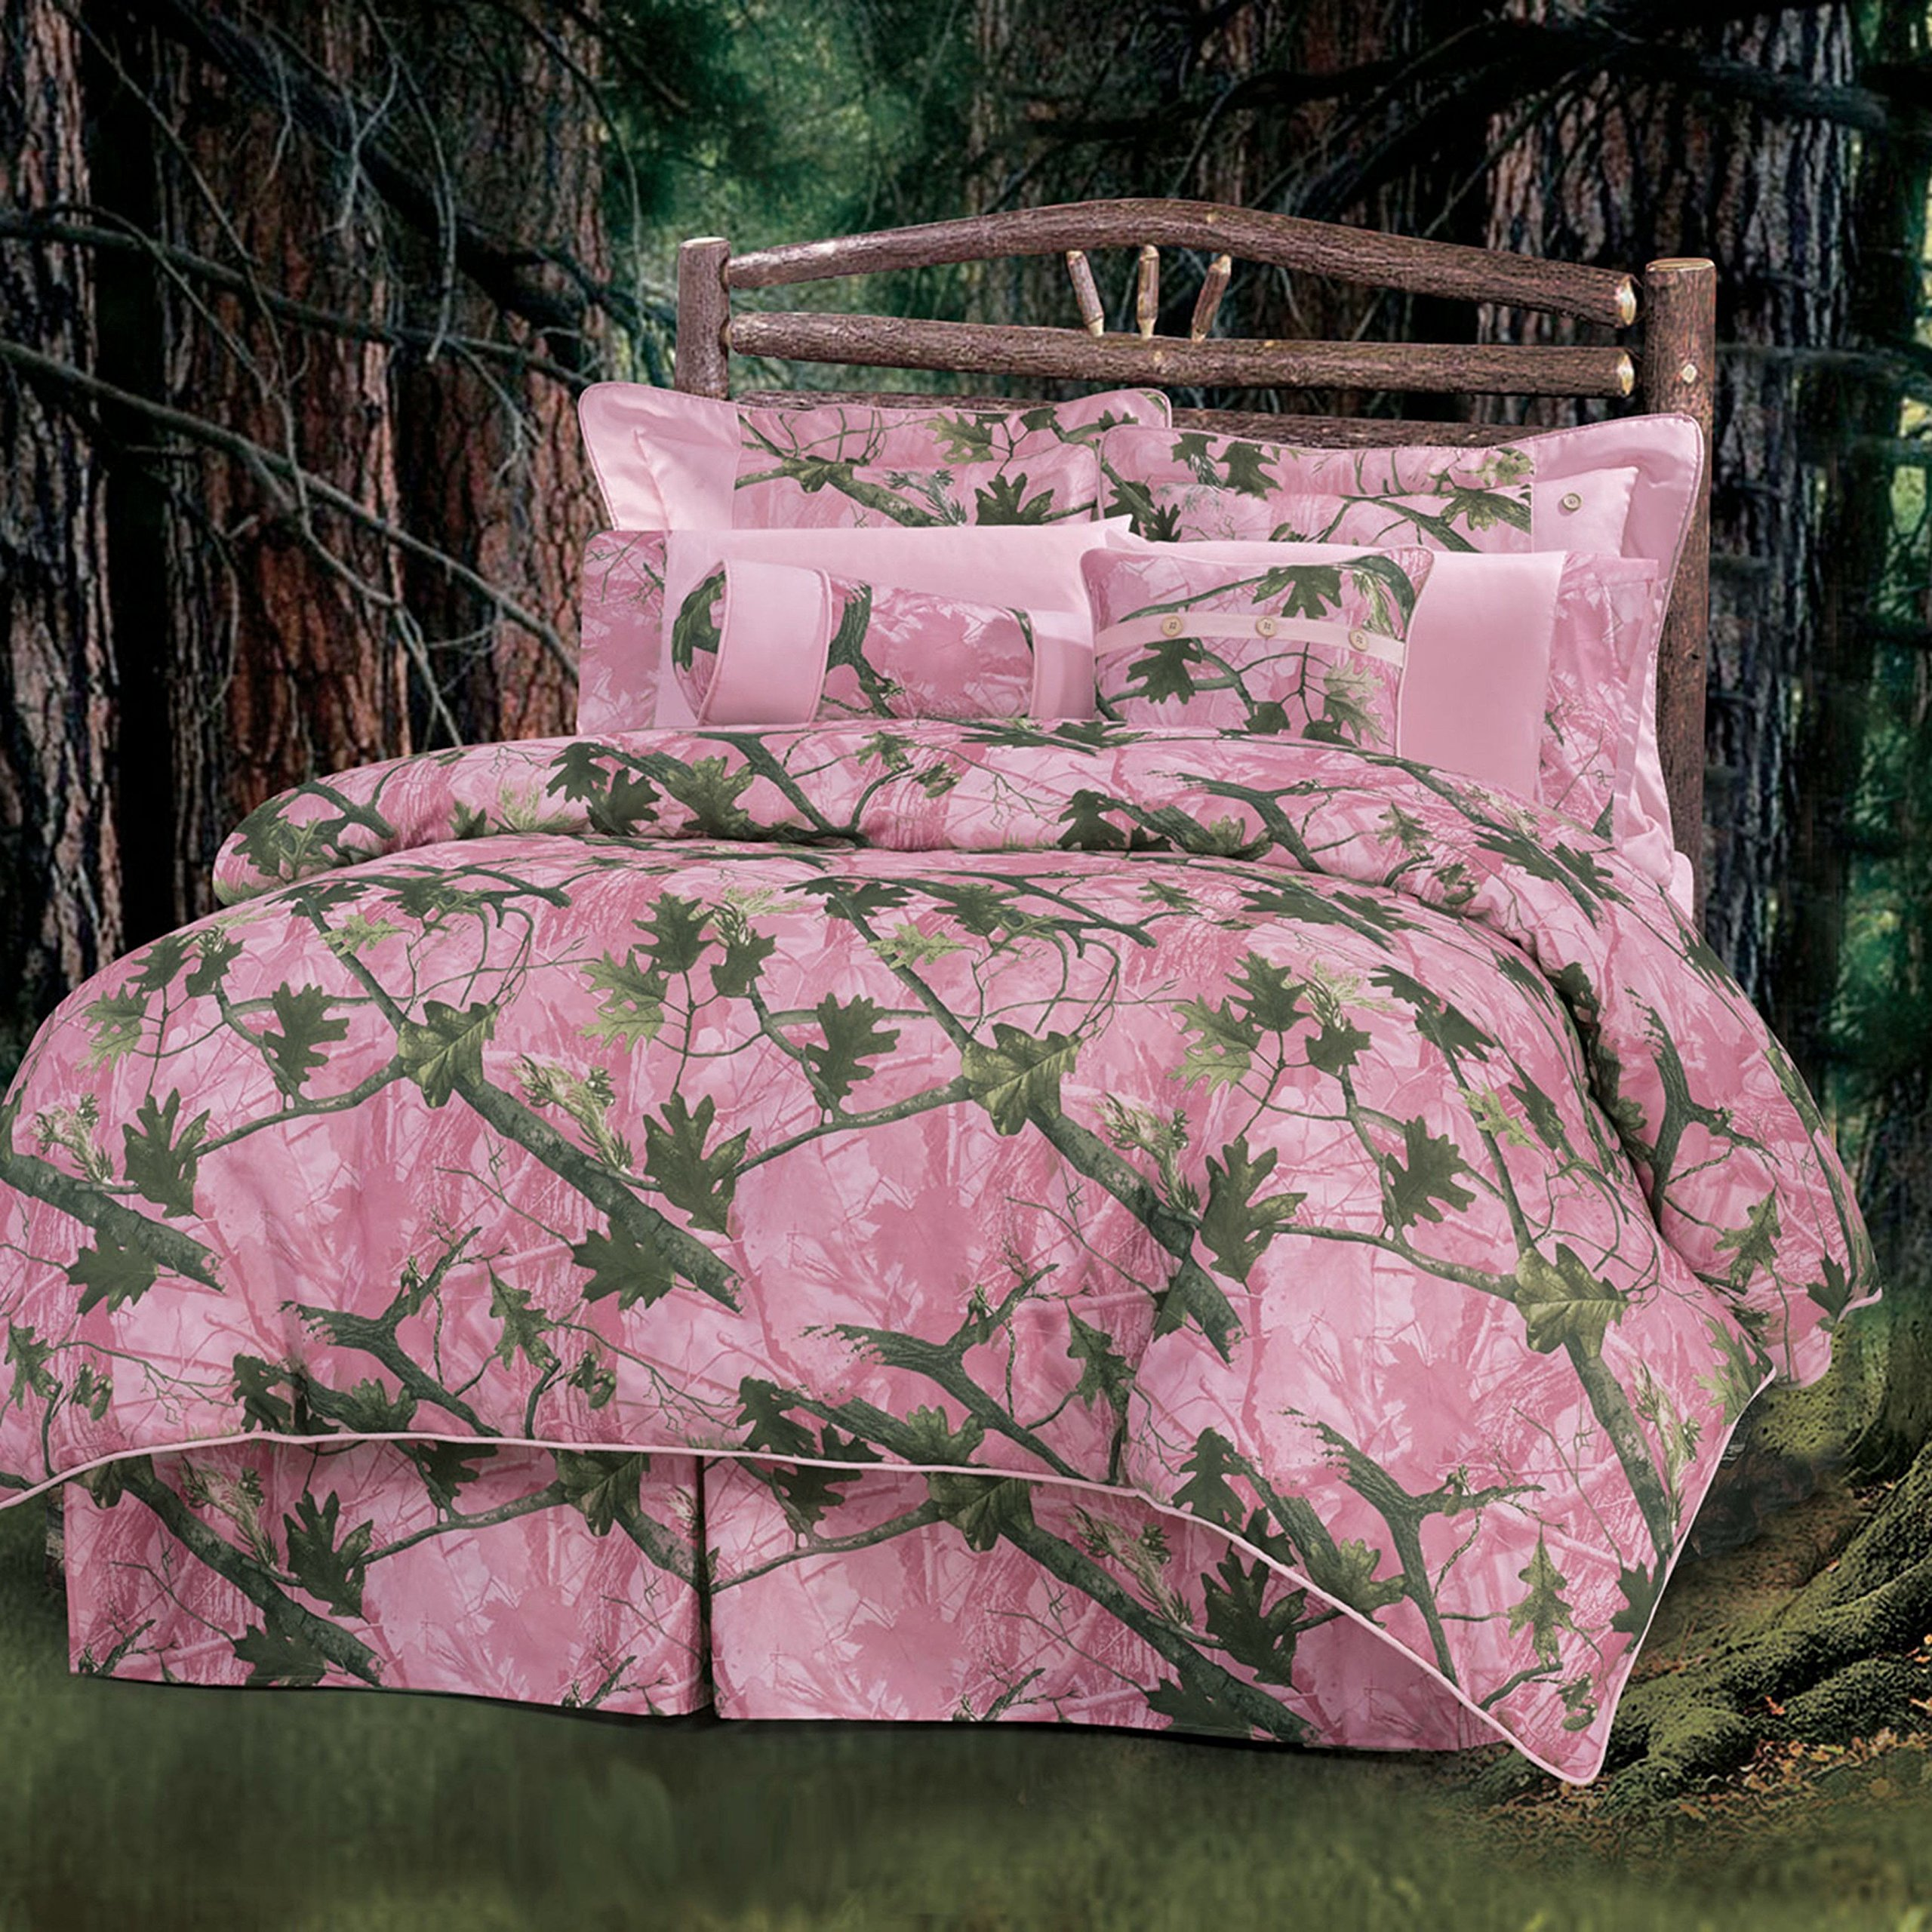 7 Piece Girls Pink Camo Full Comforter Set, Hunting Themed Bedding Camouflage Woods Leaves Branches Forest Lodge Southwest Outdoors Country Hunt Pattern, Polyester